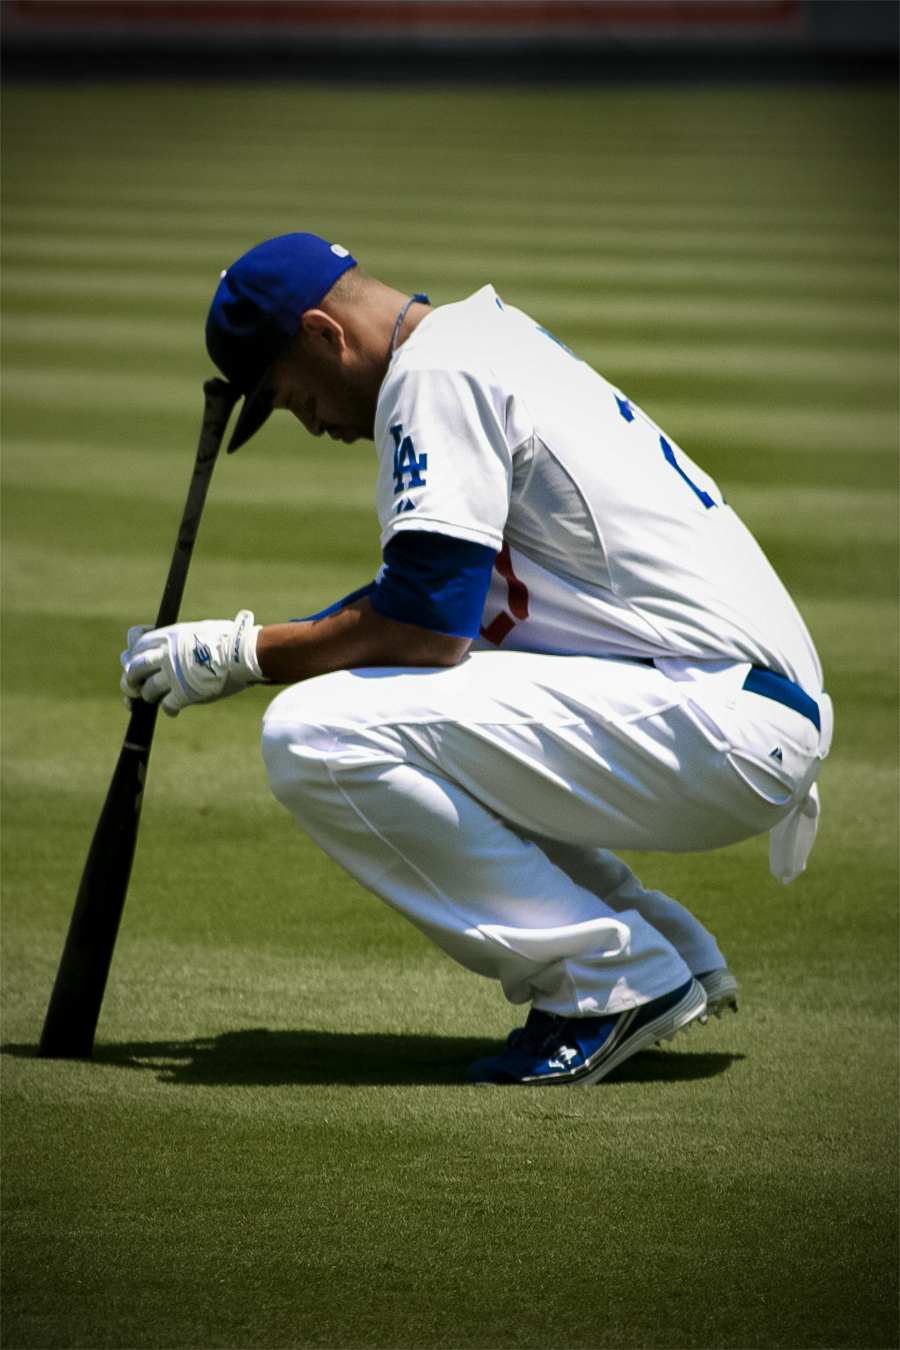 Matt Kemp, Los Angeles Dodgers